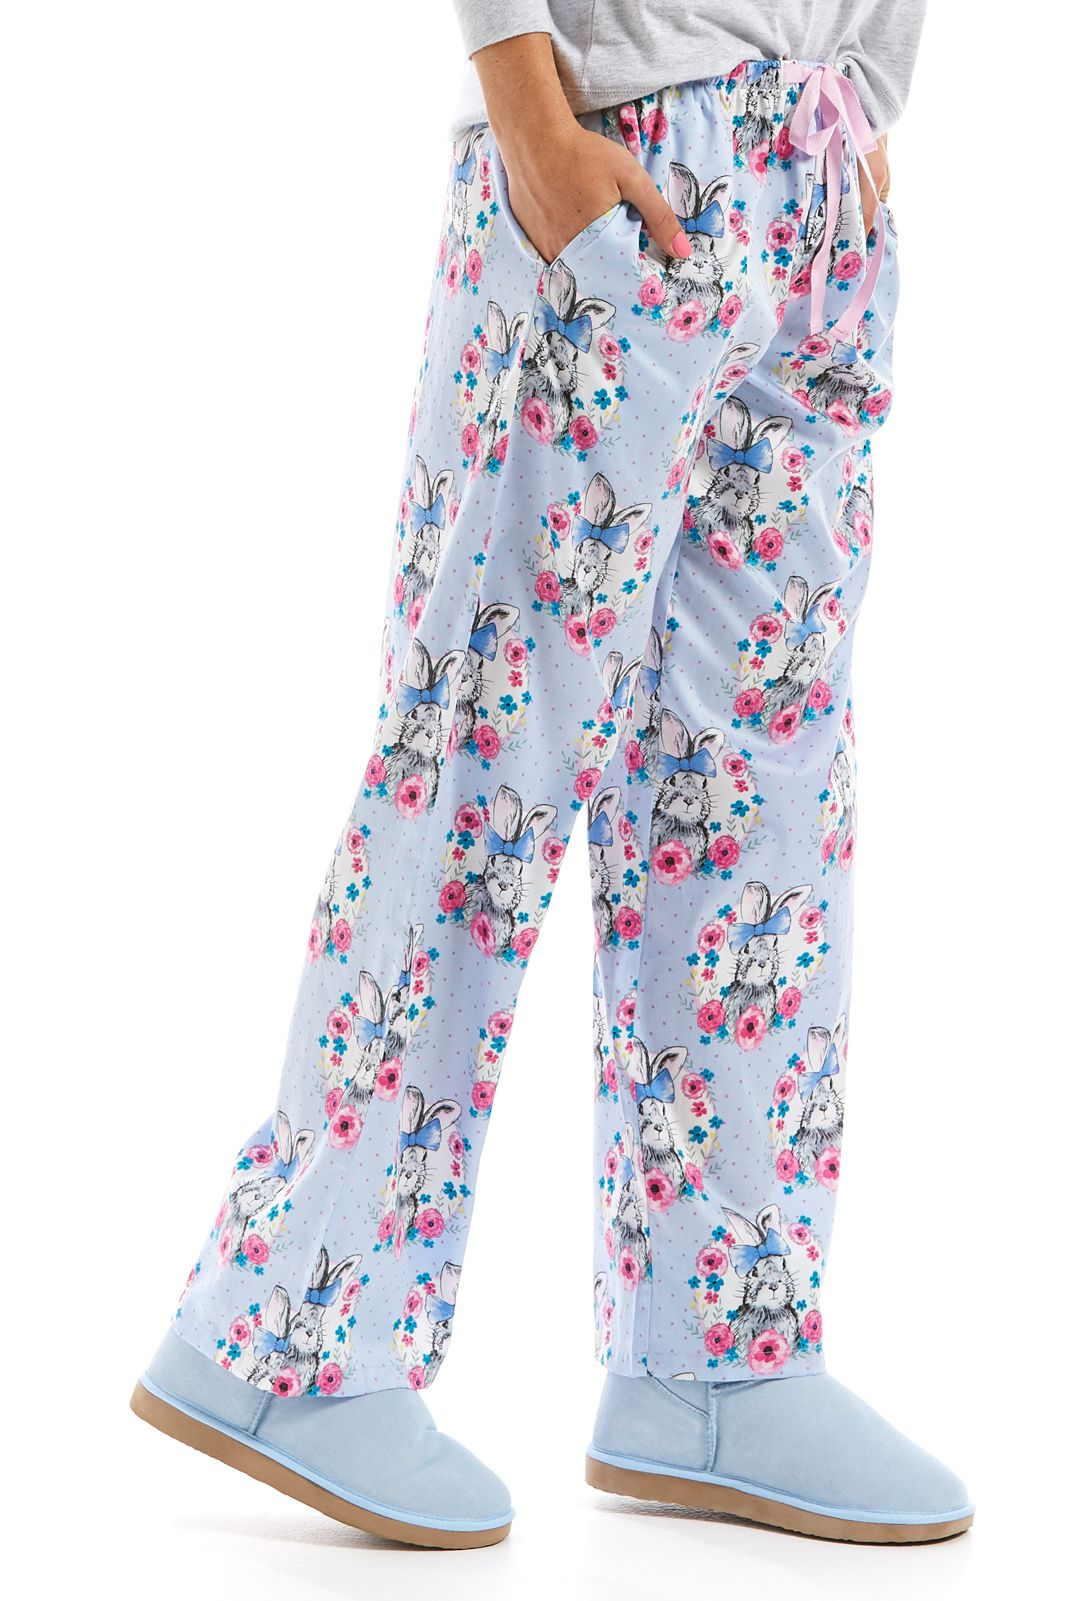 Ladies Womens Floral Patterned Jogging Bottoms Lounge Pants Trousers Loungewear